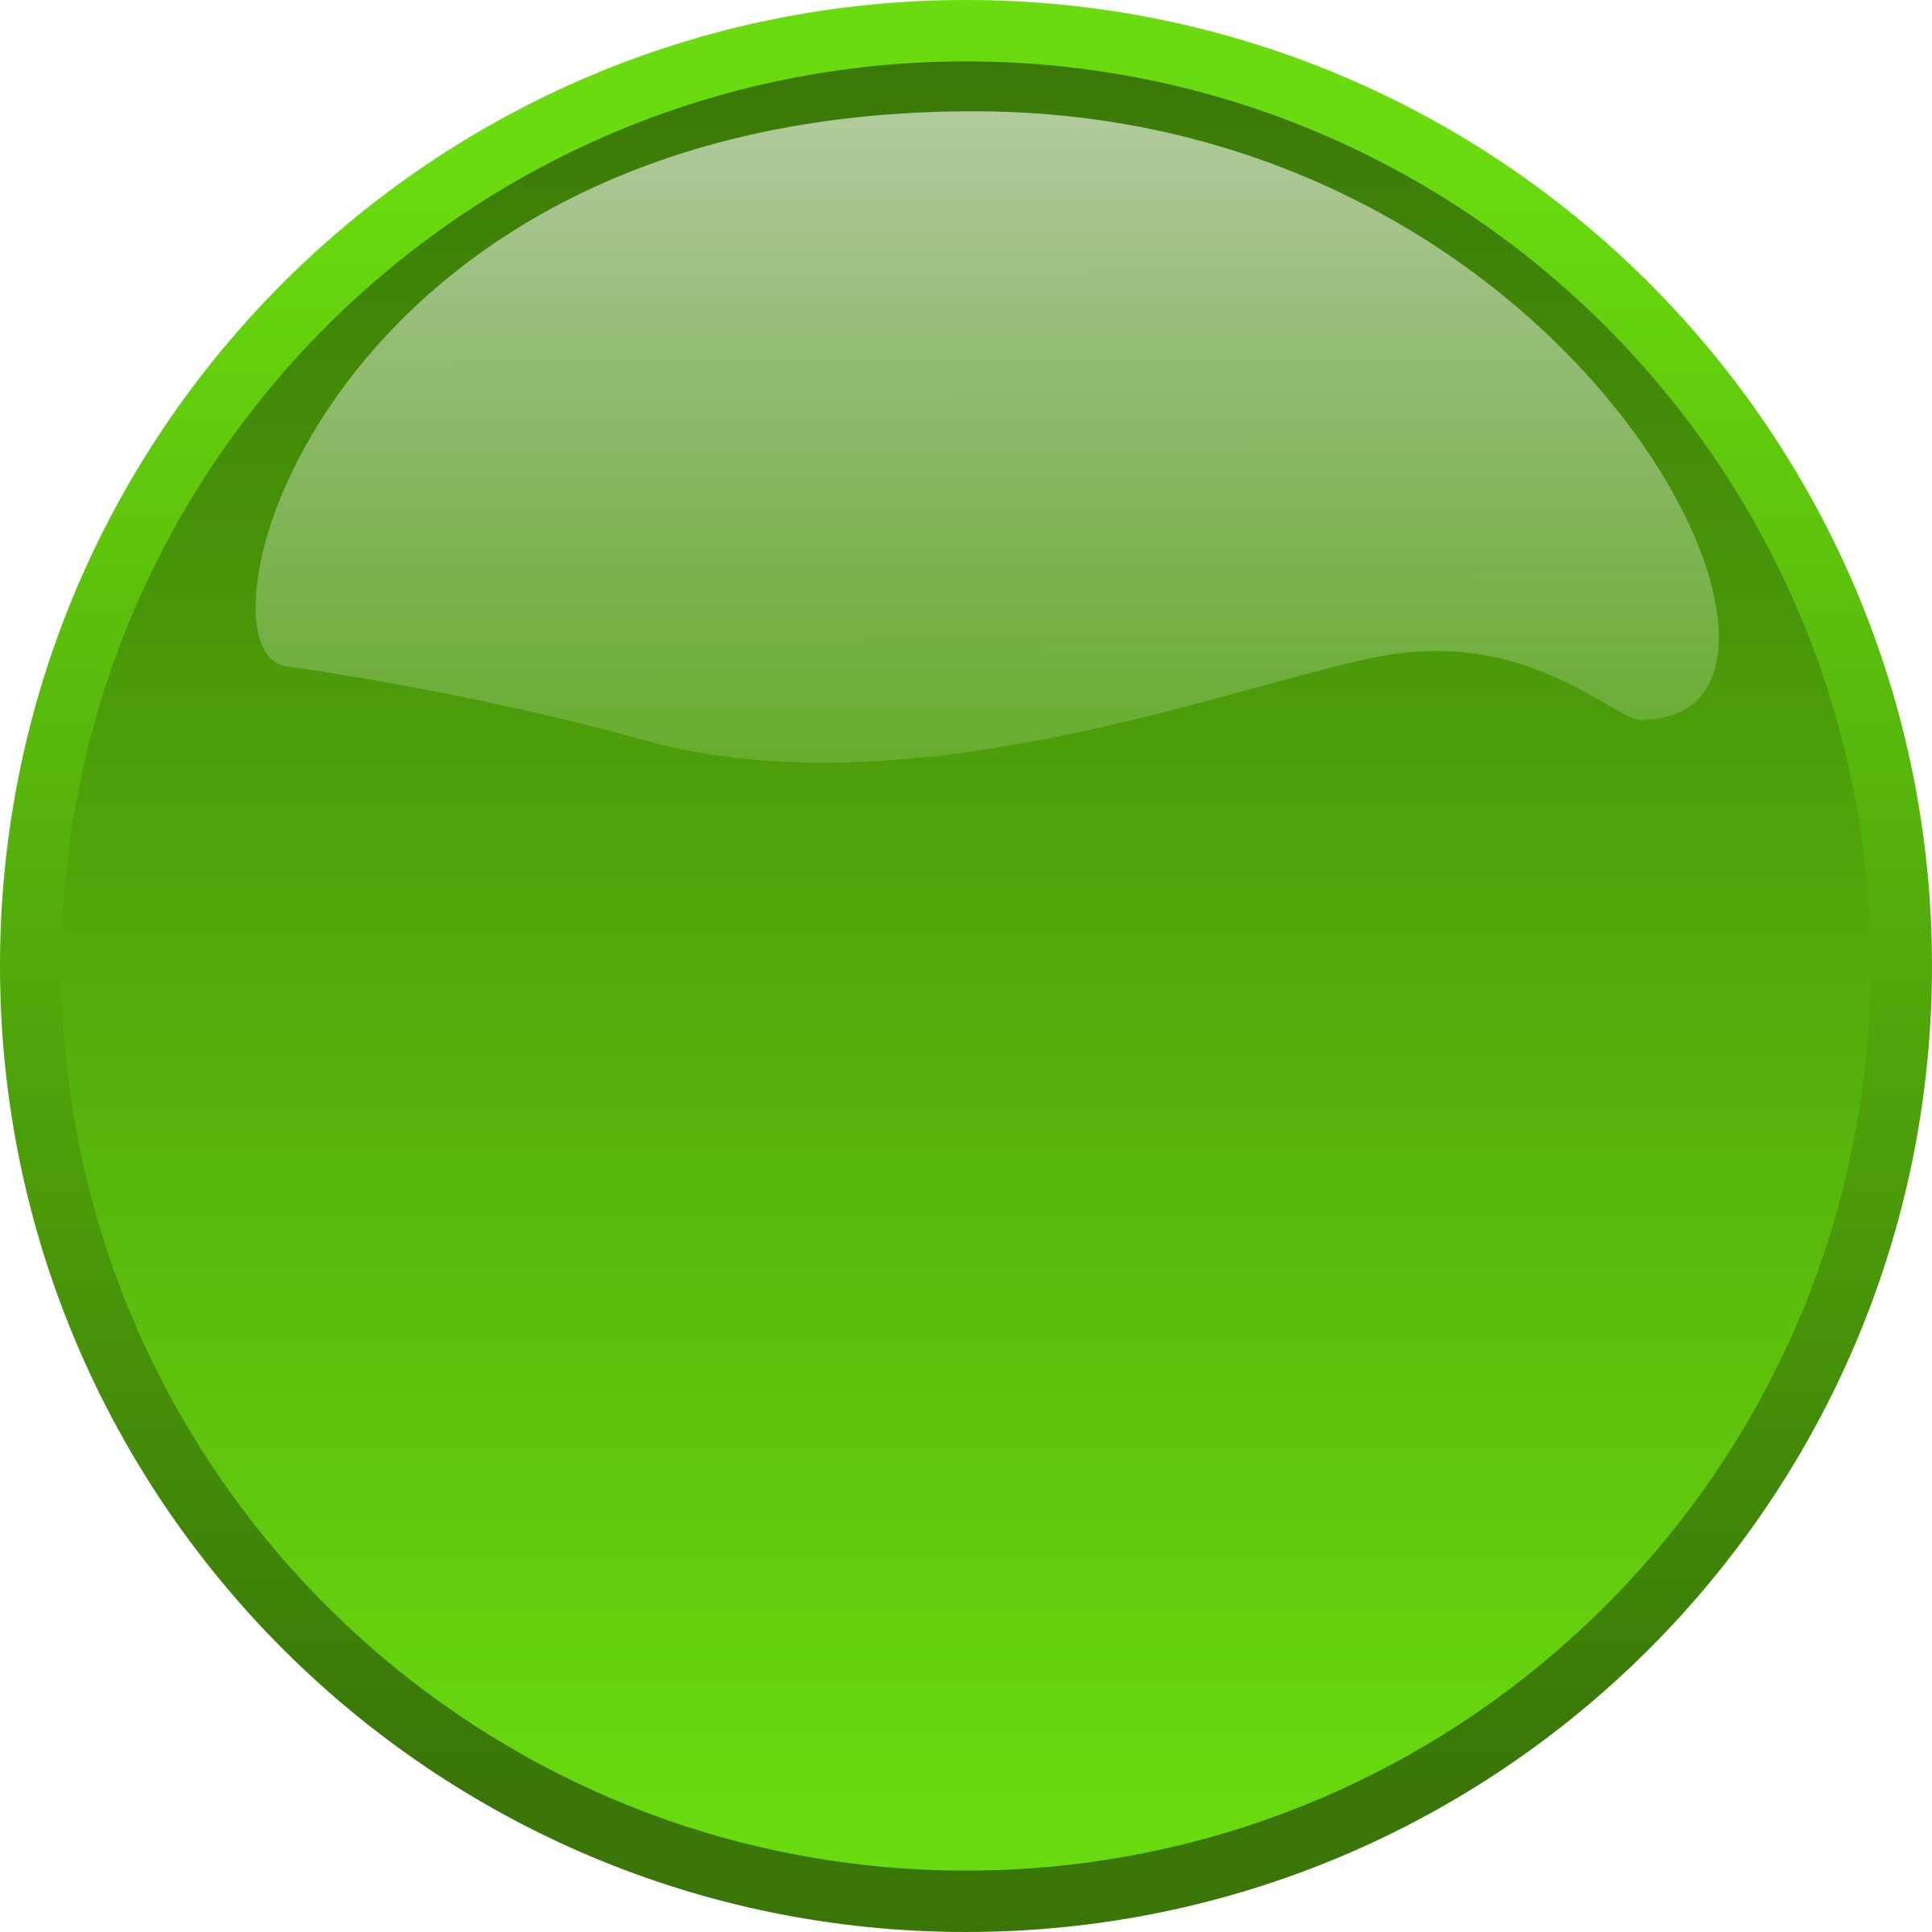 Green Circle Outline Button green 4380Green Circle Outline